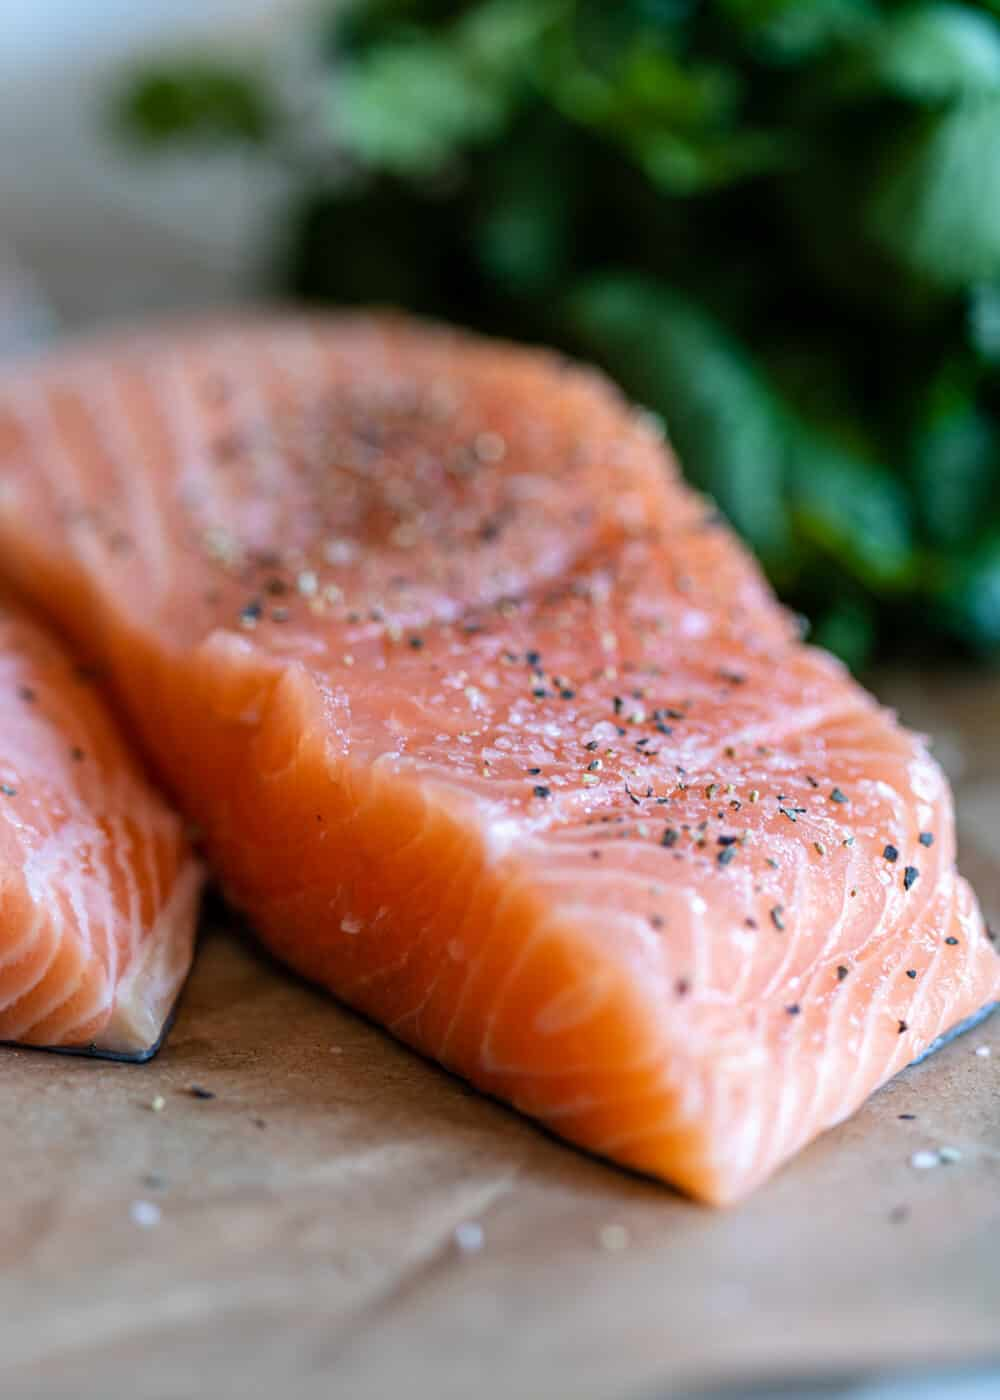 close up photo: raw salmon filet seasoned with salt and black pepper